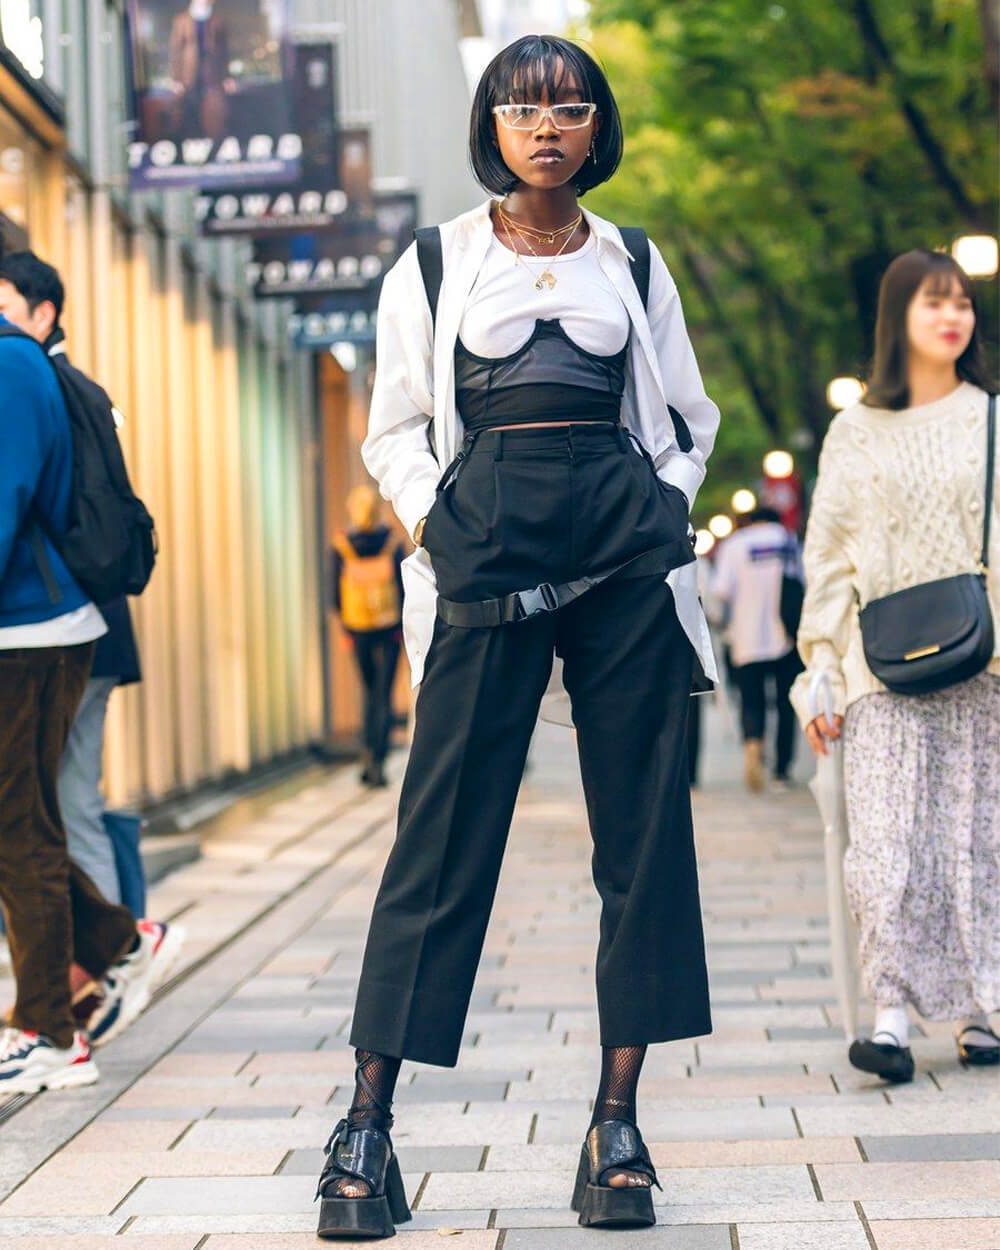 Japanese street fashion trends